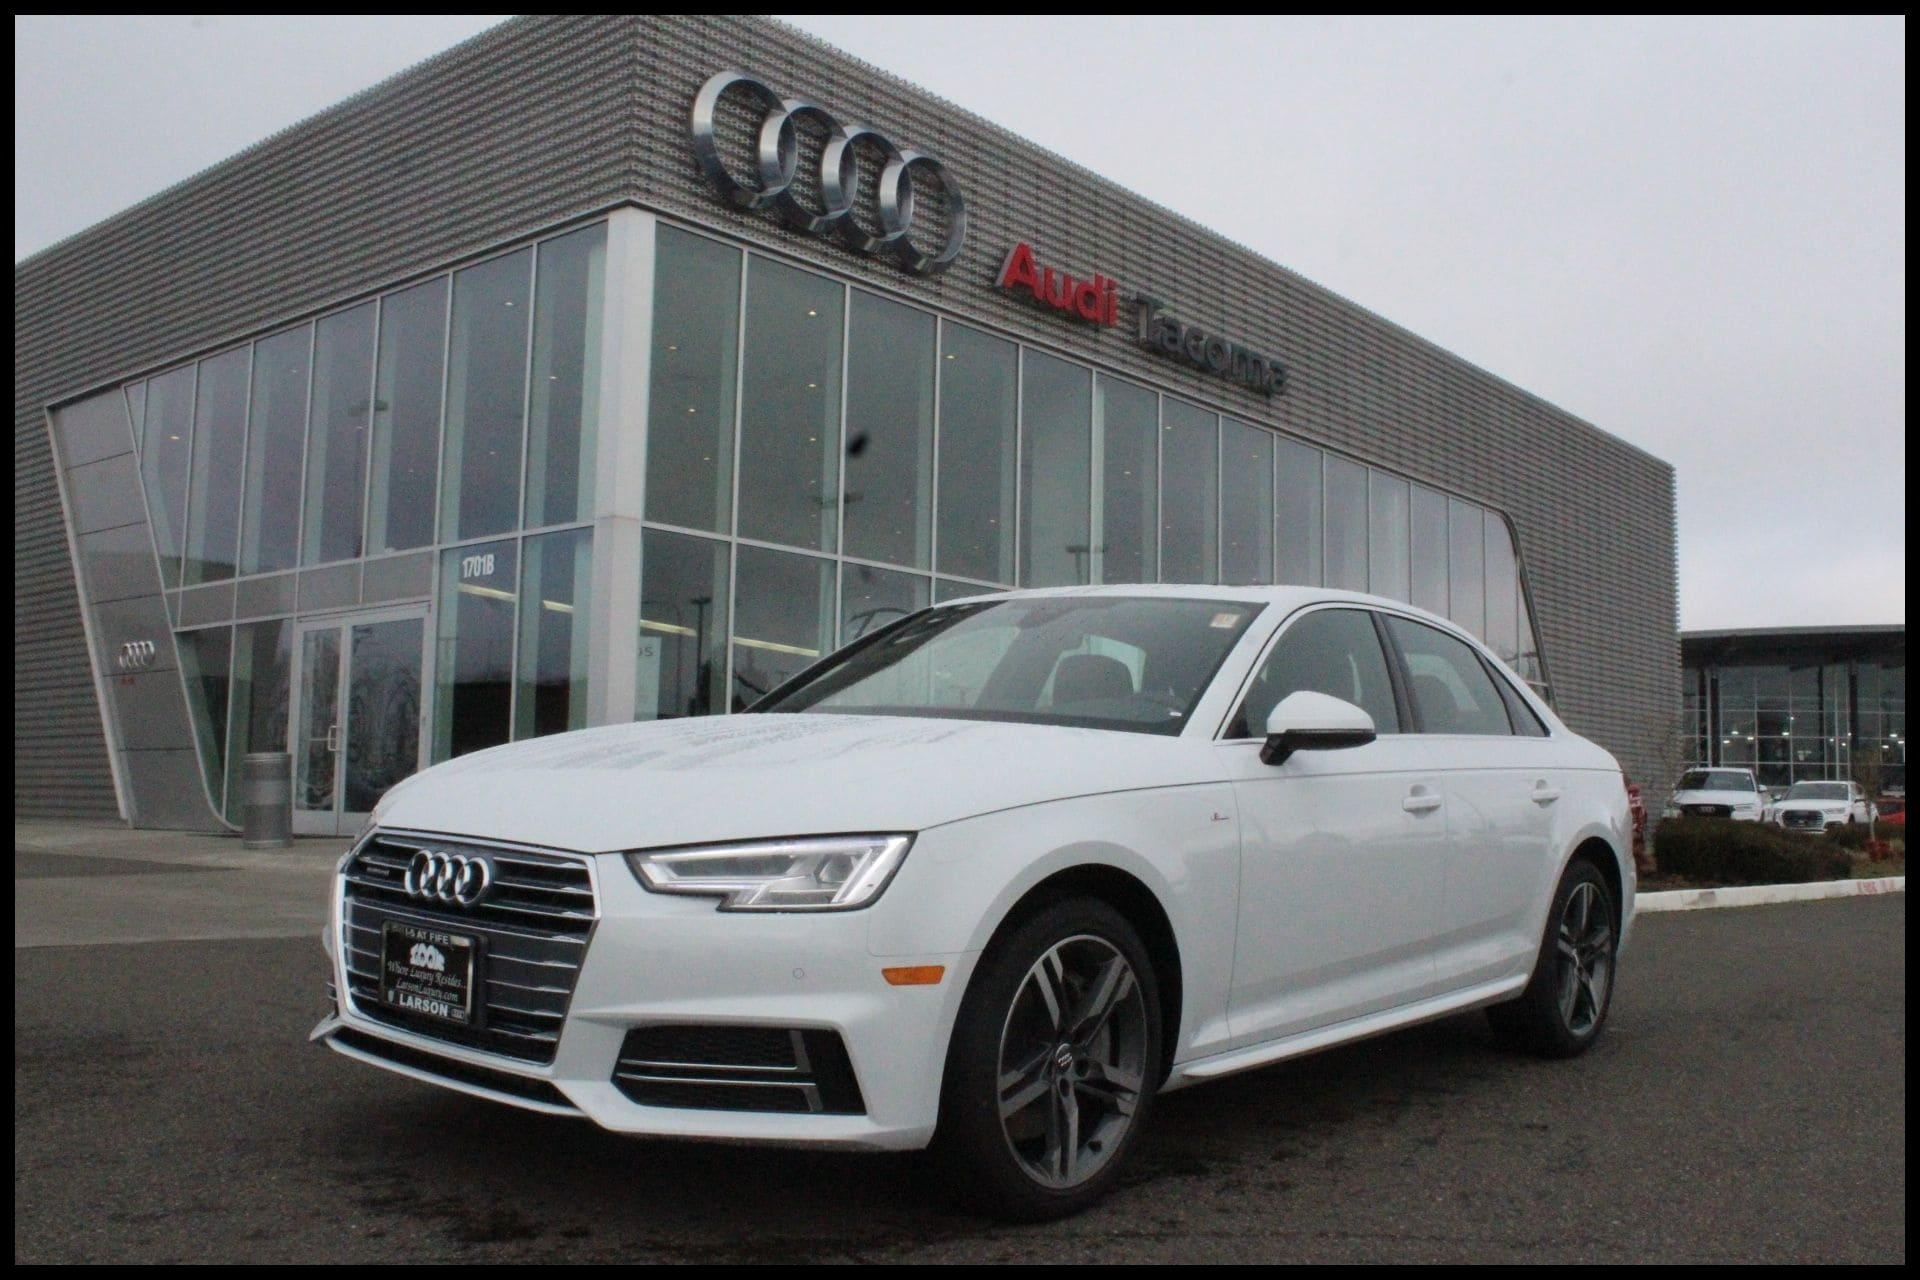 Audi A4 Maintenance Schedule Inspirational Audi A4 In Fife Wa